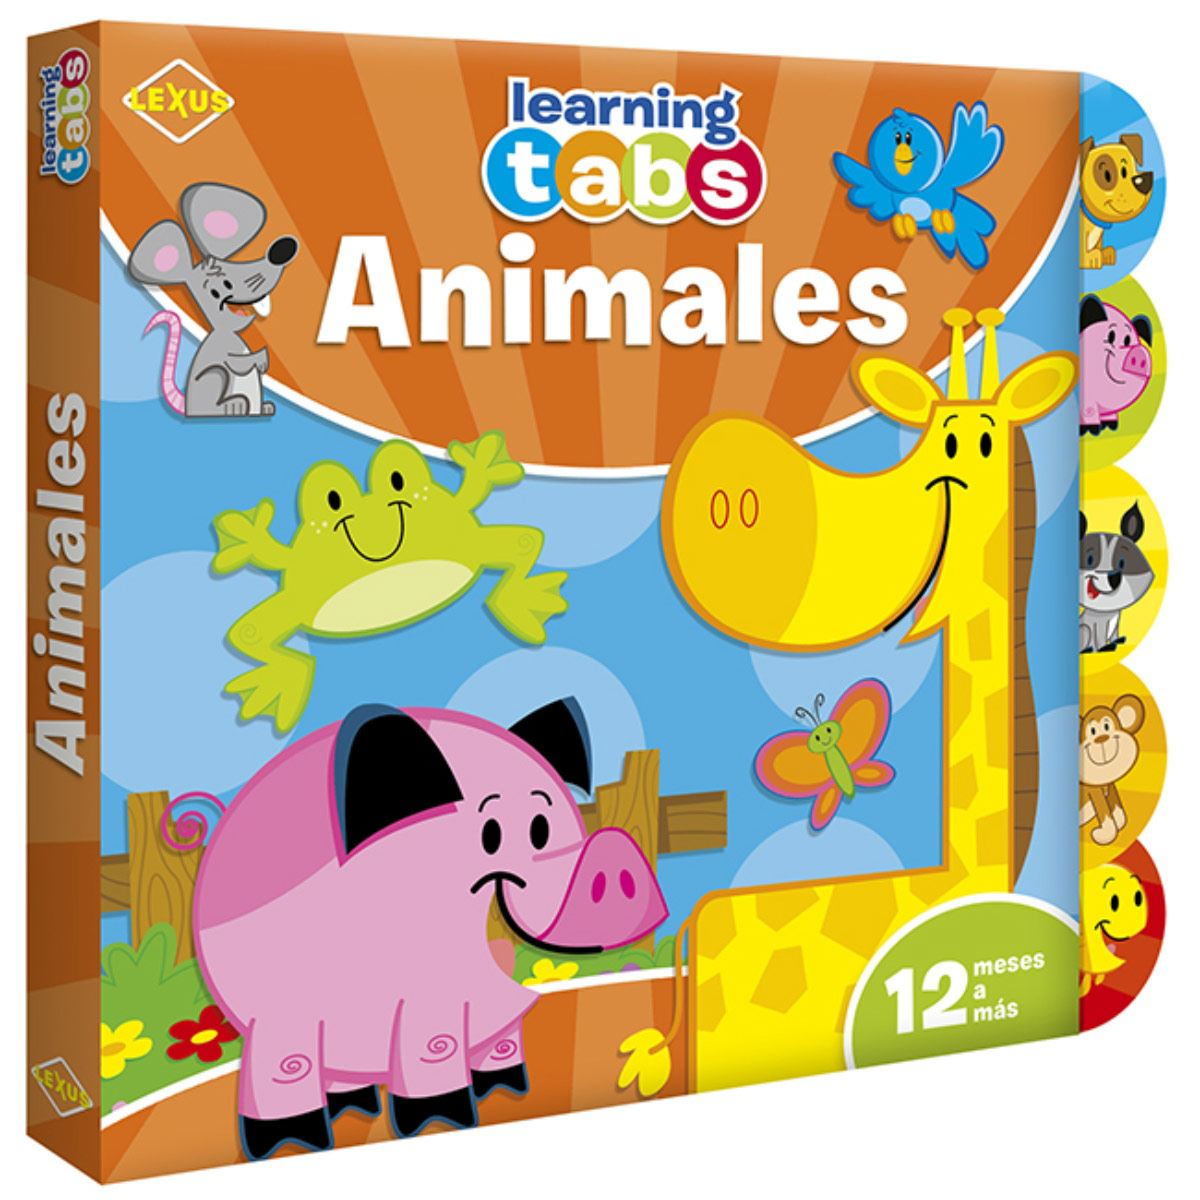 Animales learning tabs